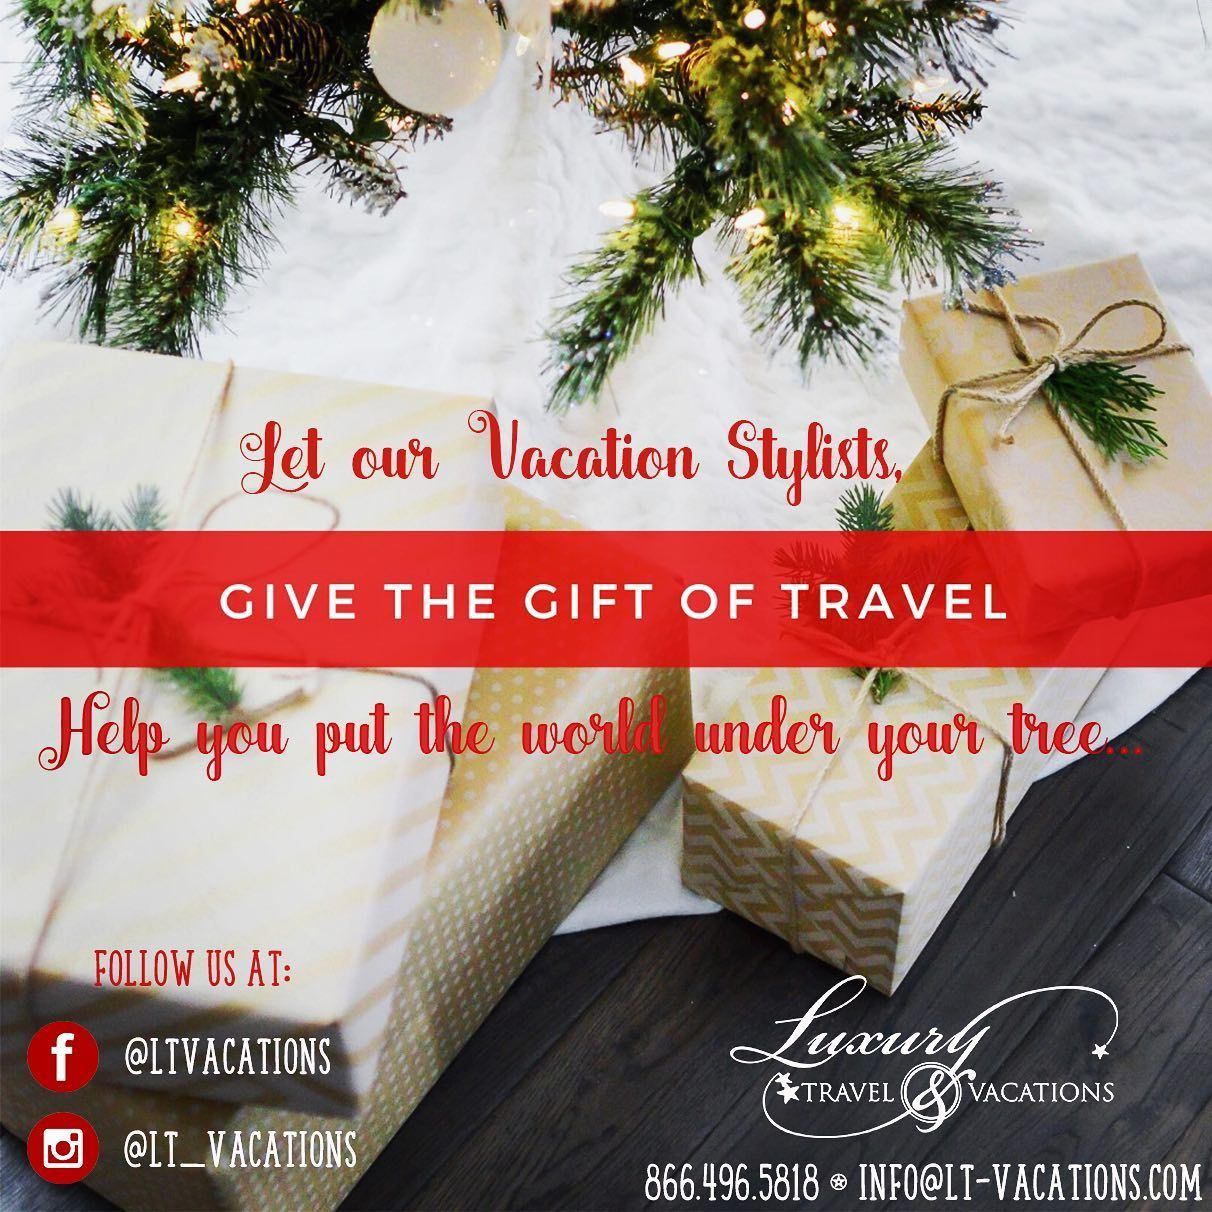 Searching for the perfect gift, look no further... . . . #giftoftravel #travelgift #giftsforhim #giftsforher #Travel #giftcertificate #traveltogether #familytravel #takethetrip #ltvacations #theplaceswego #christmasgift #christmasgiftideas #gifting #giftingtravel